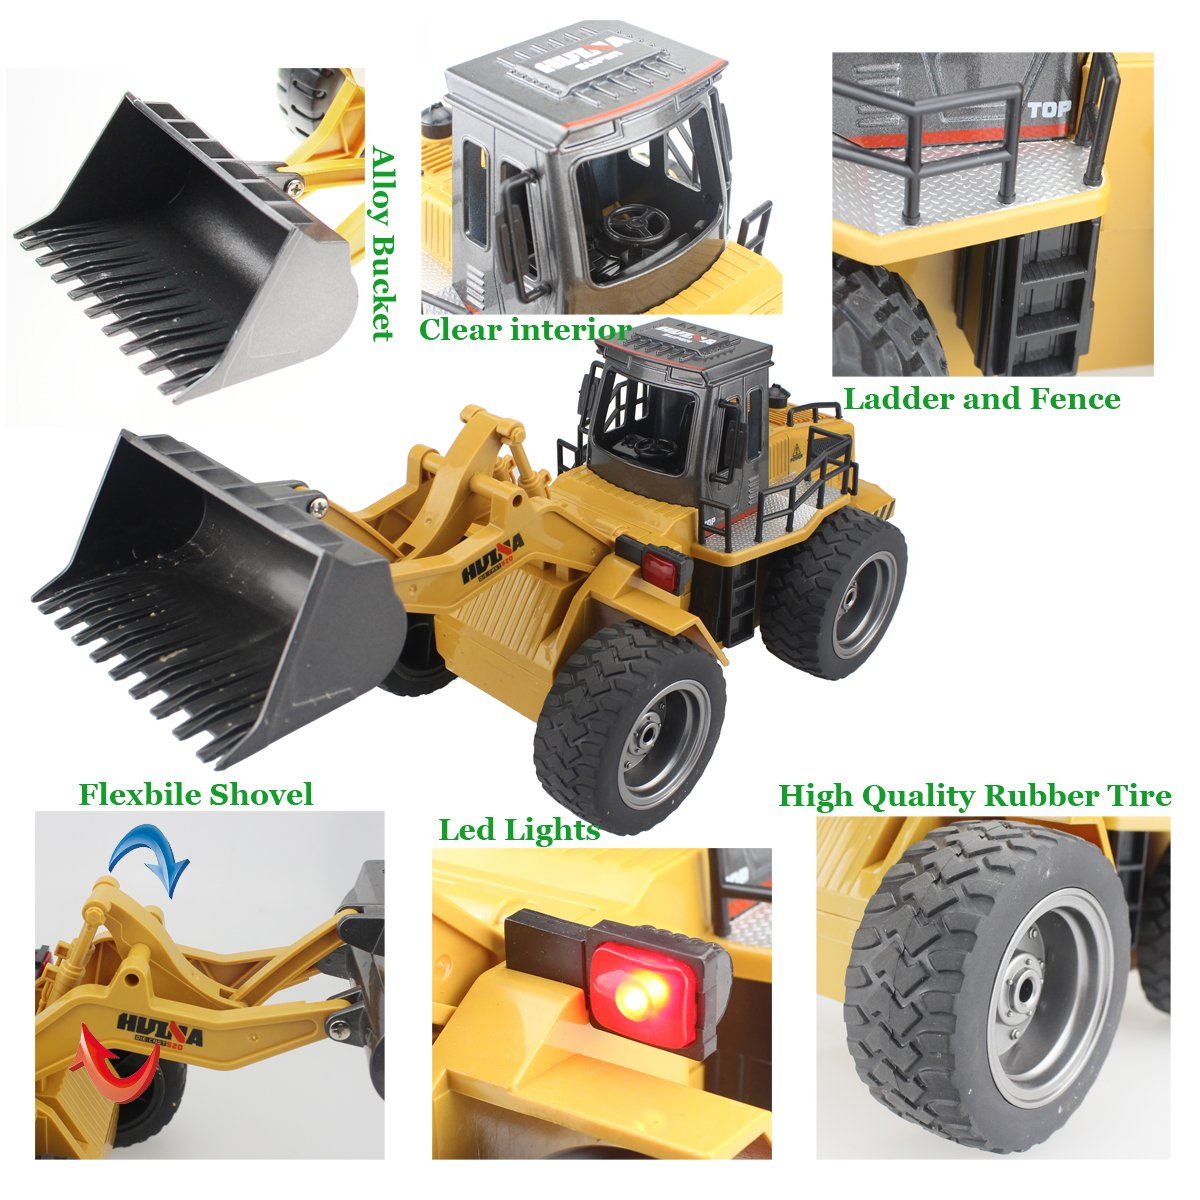 Fistone RC Truck Alloy Shovel Loader Tractor 2.4G Radio Control 4 Wheel Bulldozer 4WD Front Loader Construction Vehicle Electronic Toys Game Hobby Model with Light and Sounds by Fistone (Image #3)